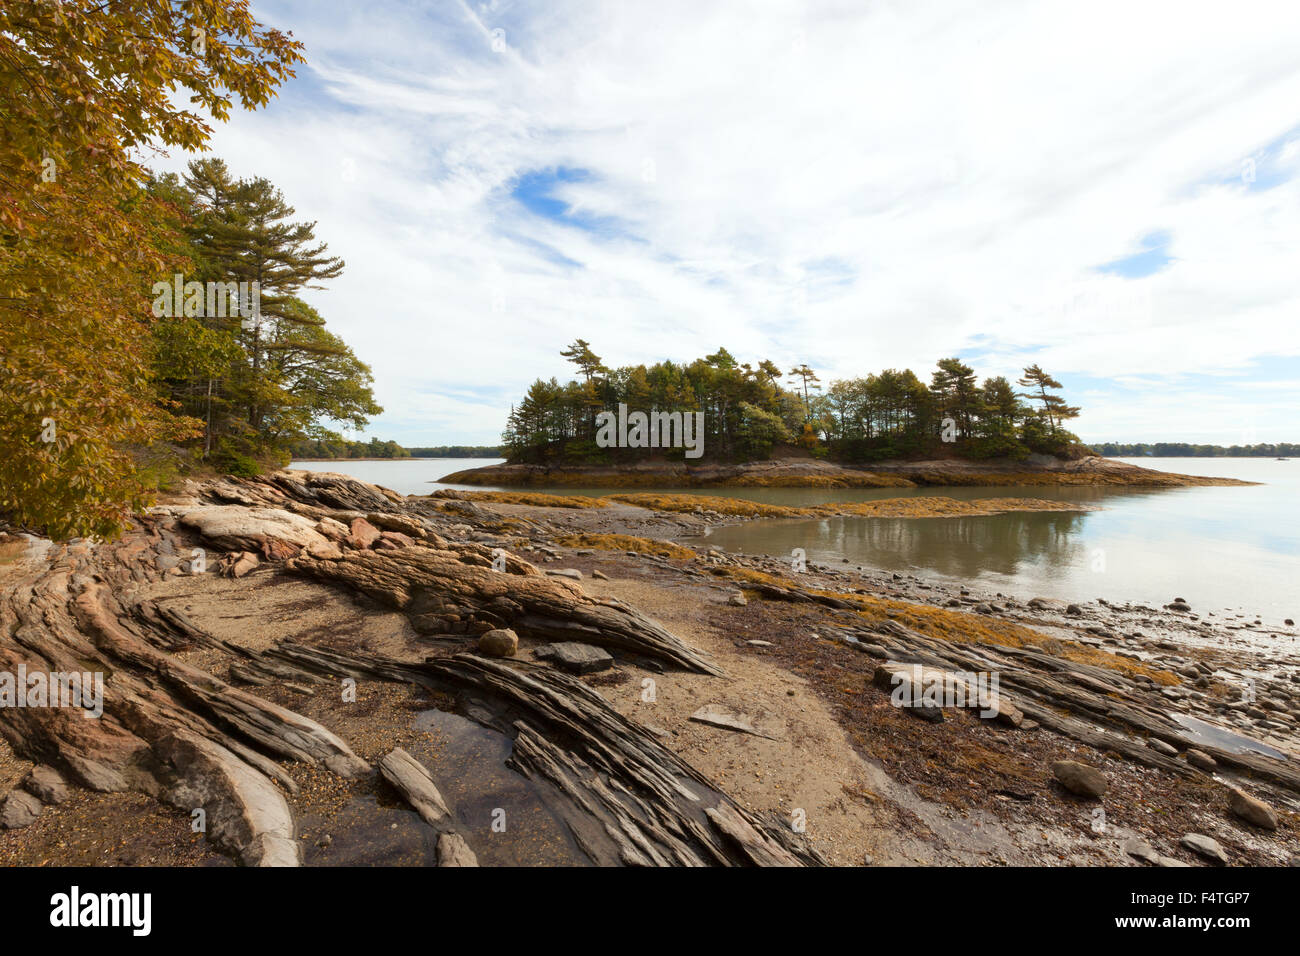 The Maine coast at Wolfe's Neck Woods state park, Casco Bay, Freeport, Maine USA - Stock Image